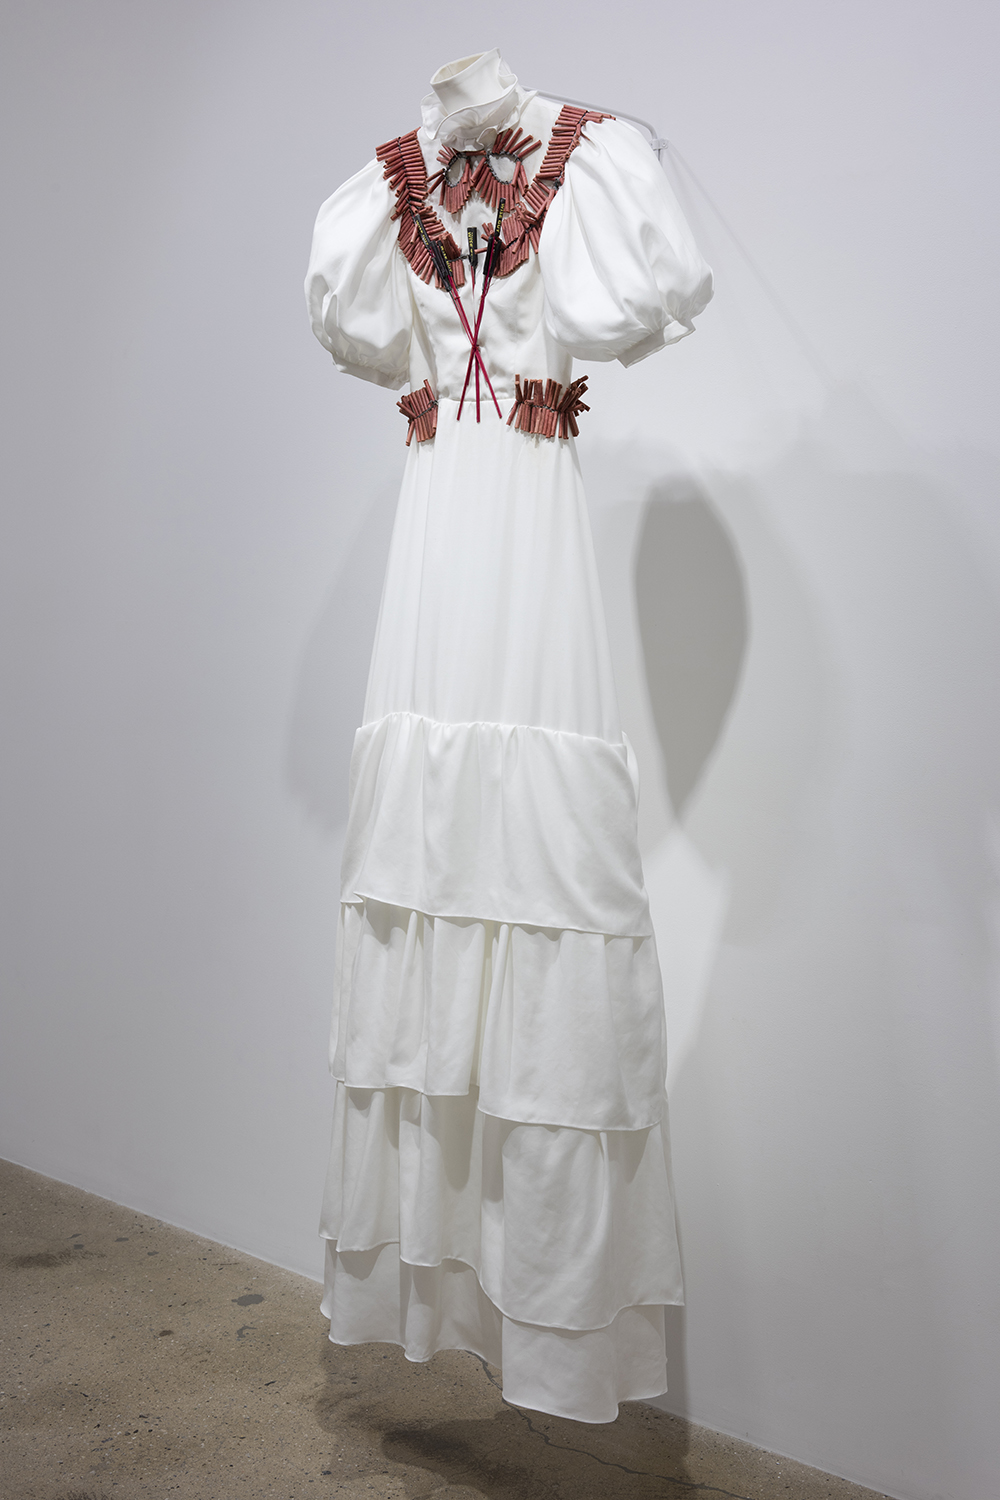 Audrey Wollen. <em>Only Detonate</em>, 2017. Cotton dress and fireworks, 76 x 27 x 8 inches